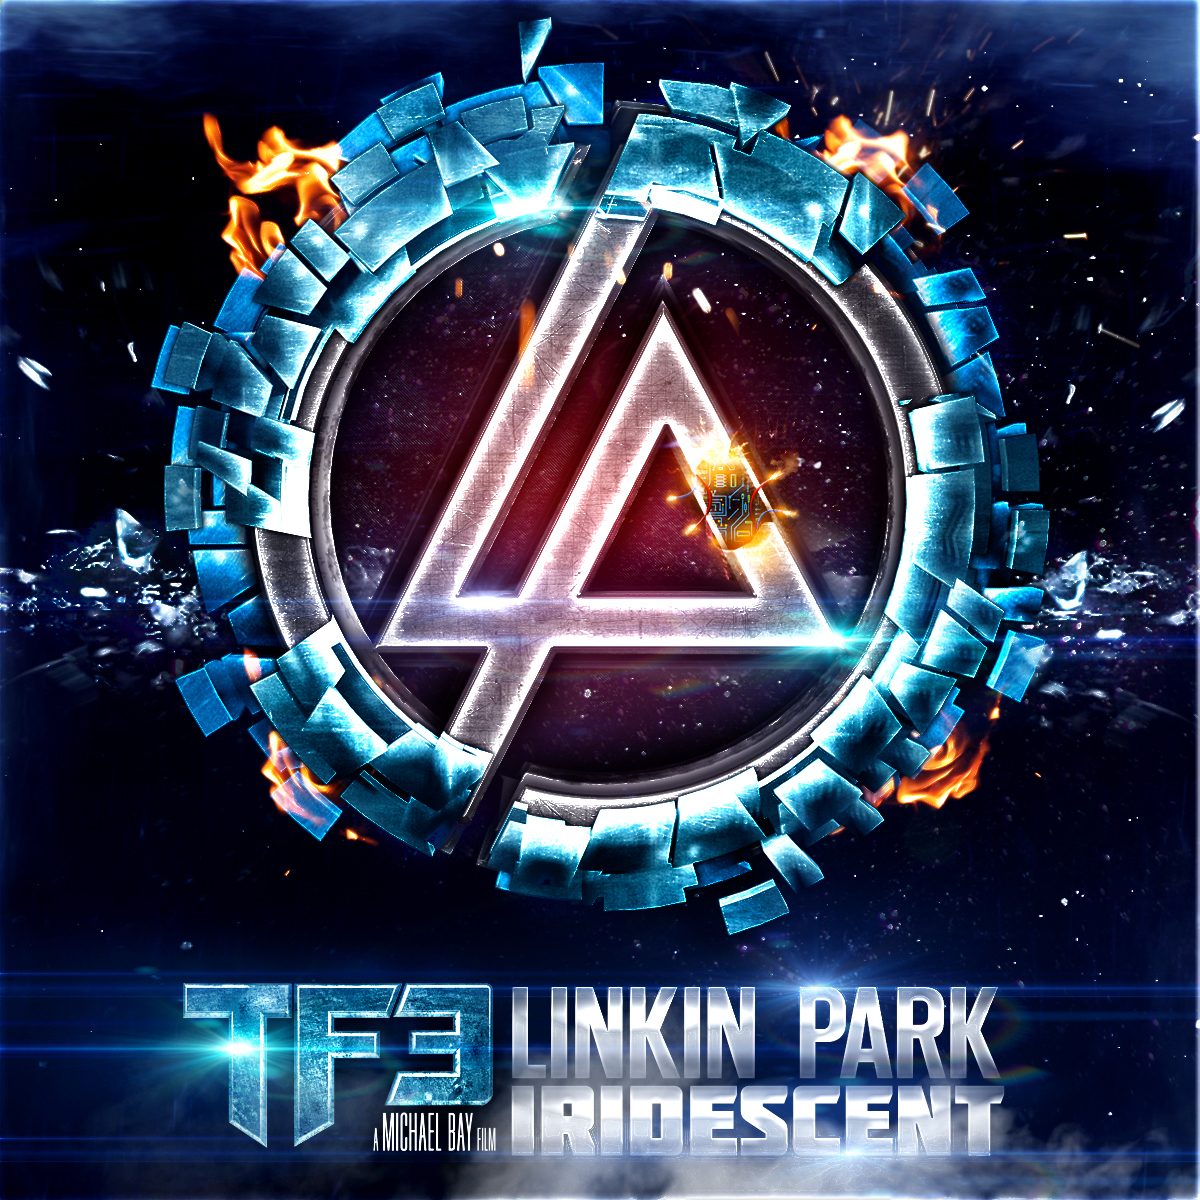 Linkin Park- Iridescent Design by Industrykidz